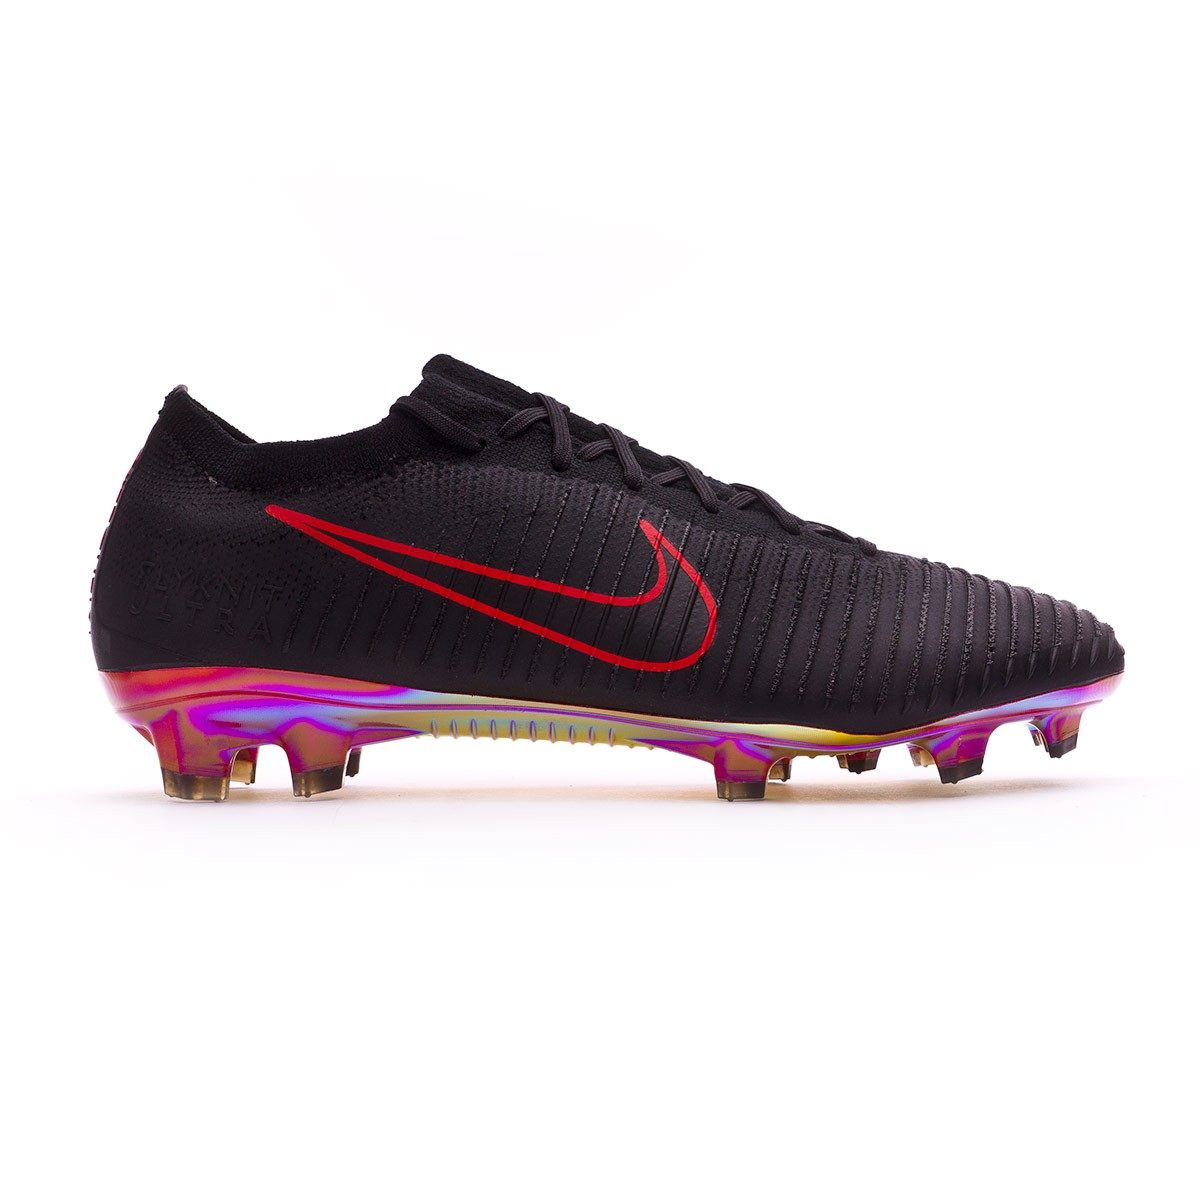 5b445c14e190e ... australia bota mercurial vapor flyknit ultra fg black university red.  category 7558a 37edc